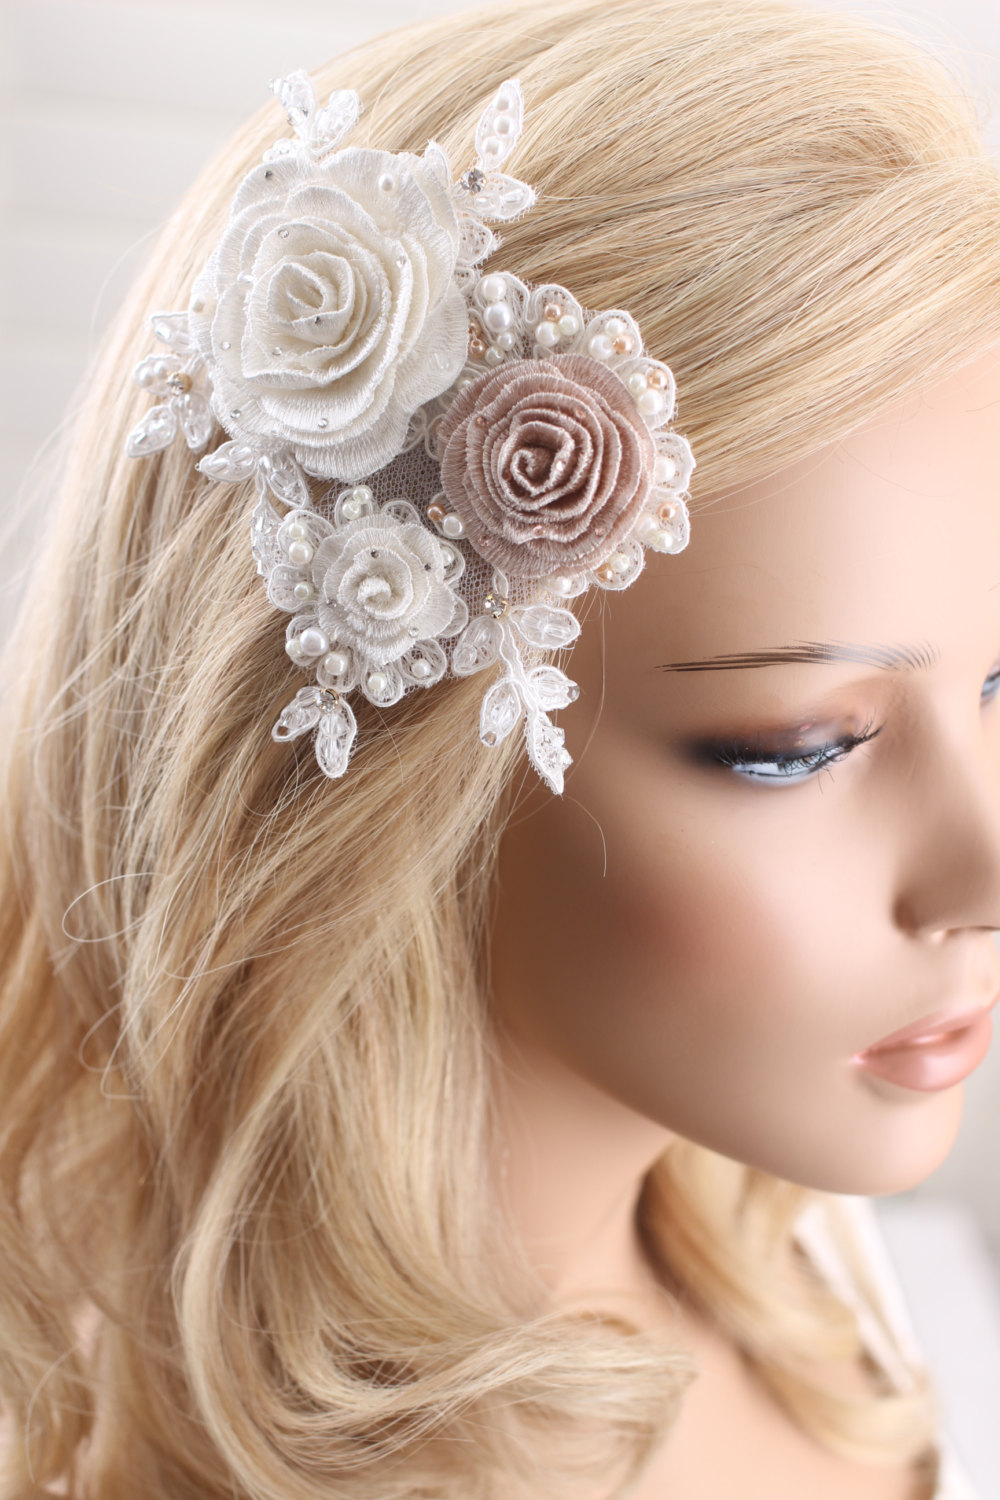 Classic Bridal Wedding Beaded Lace Hairpiece, Embroidered Flower Hair Comb, Accessories, Headpiece, Comb